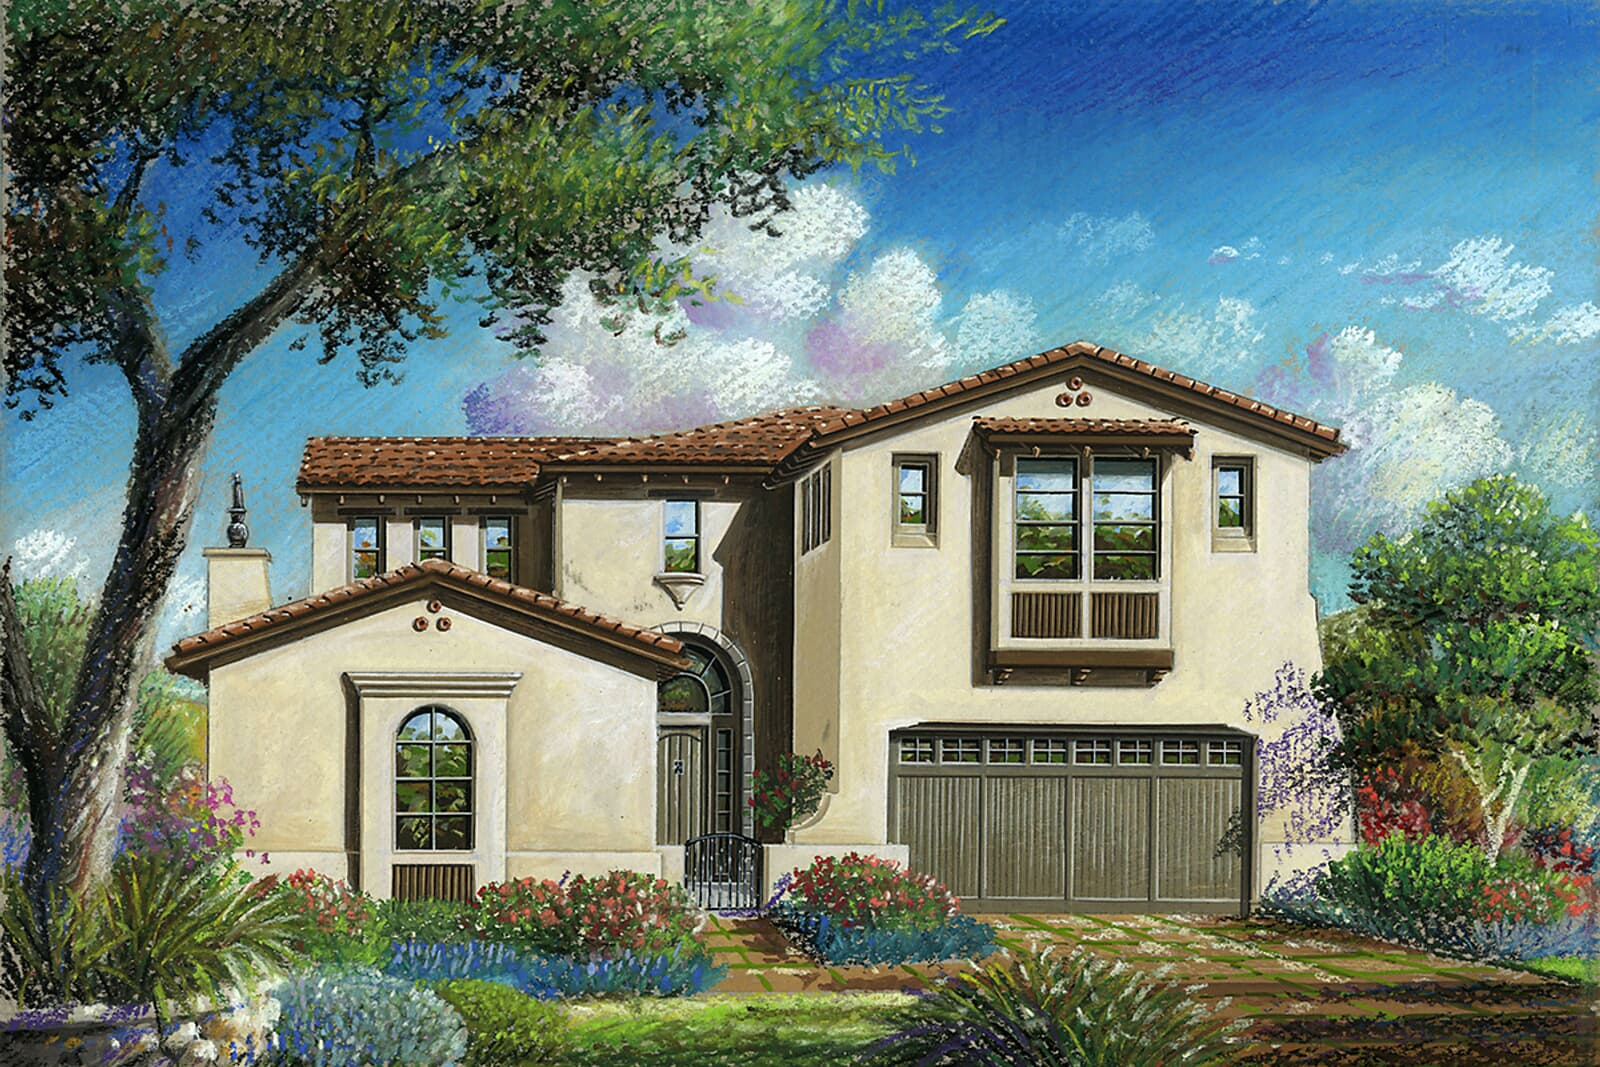 Residence 6AR Rendering | Crown Point at Stonebrae in Hayward, CA | Brookfield Residential